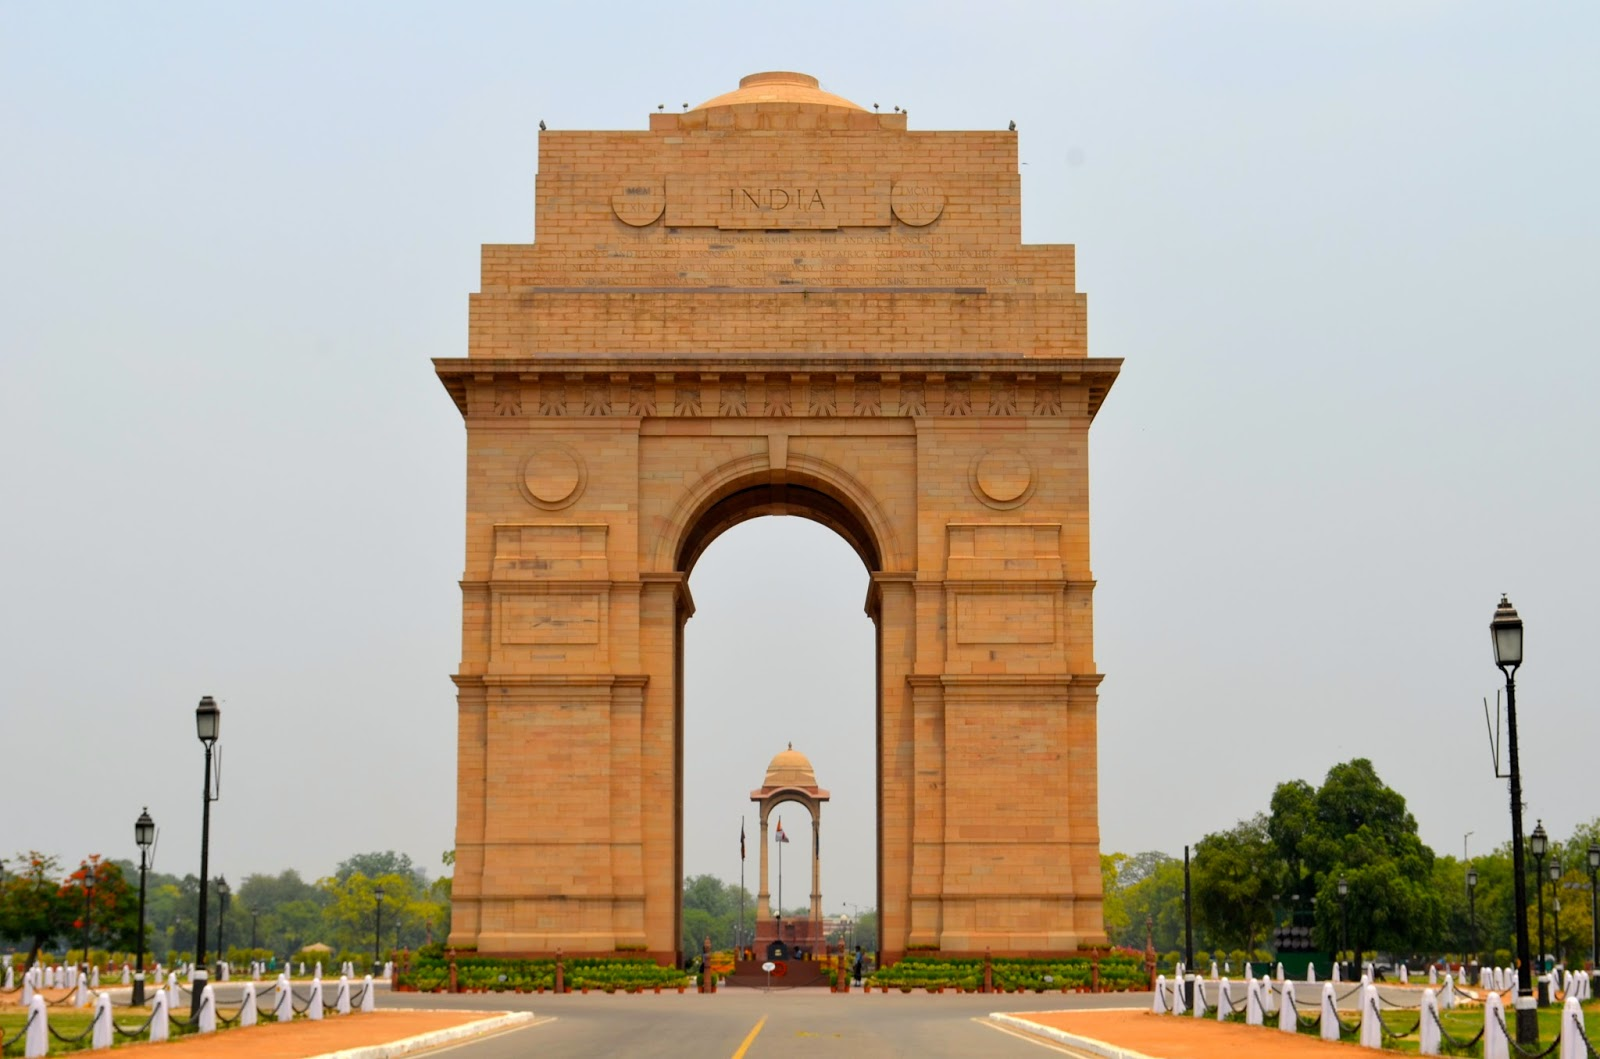 India Gate Delhi,India